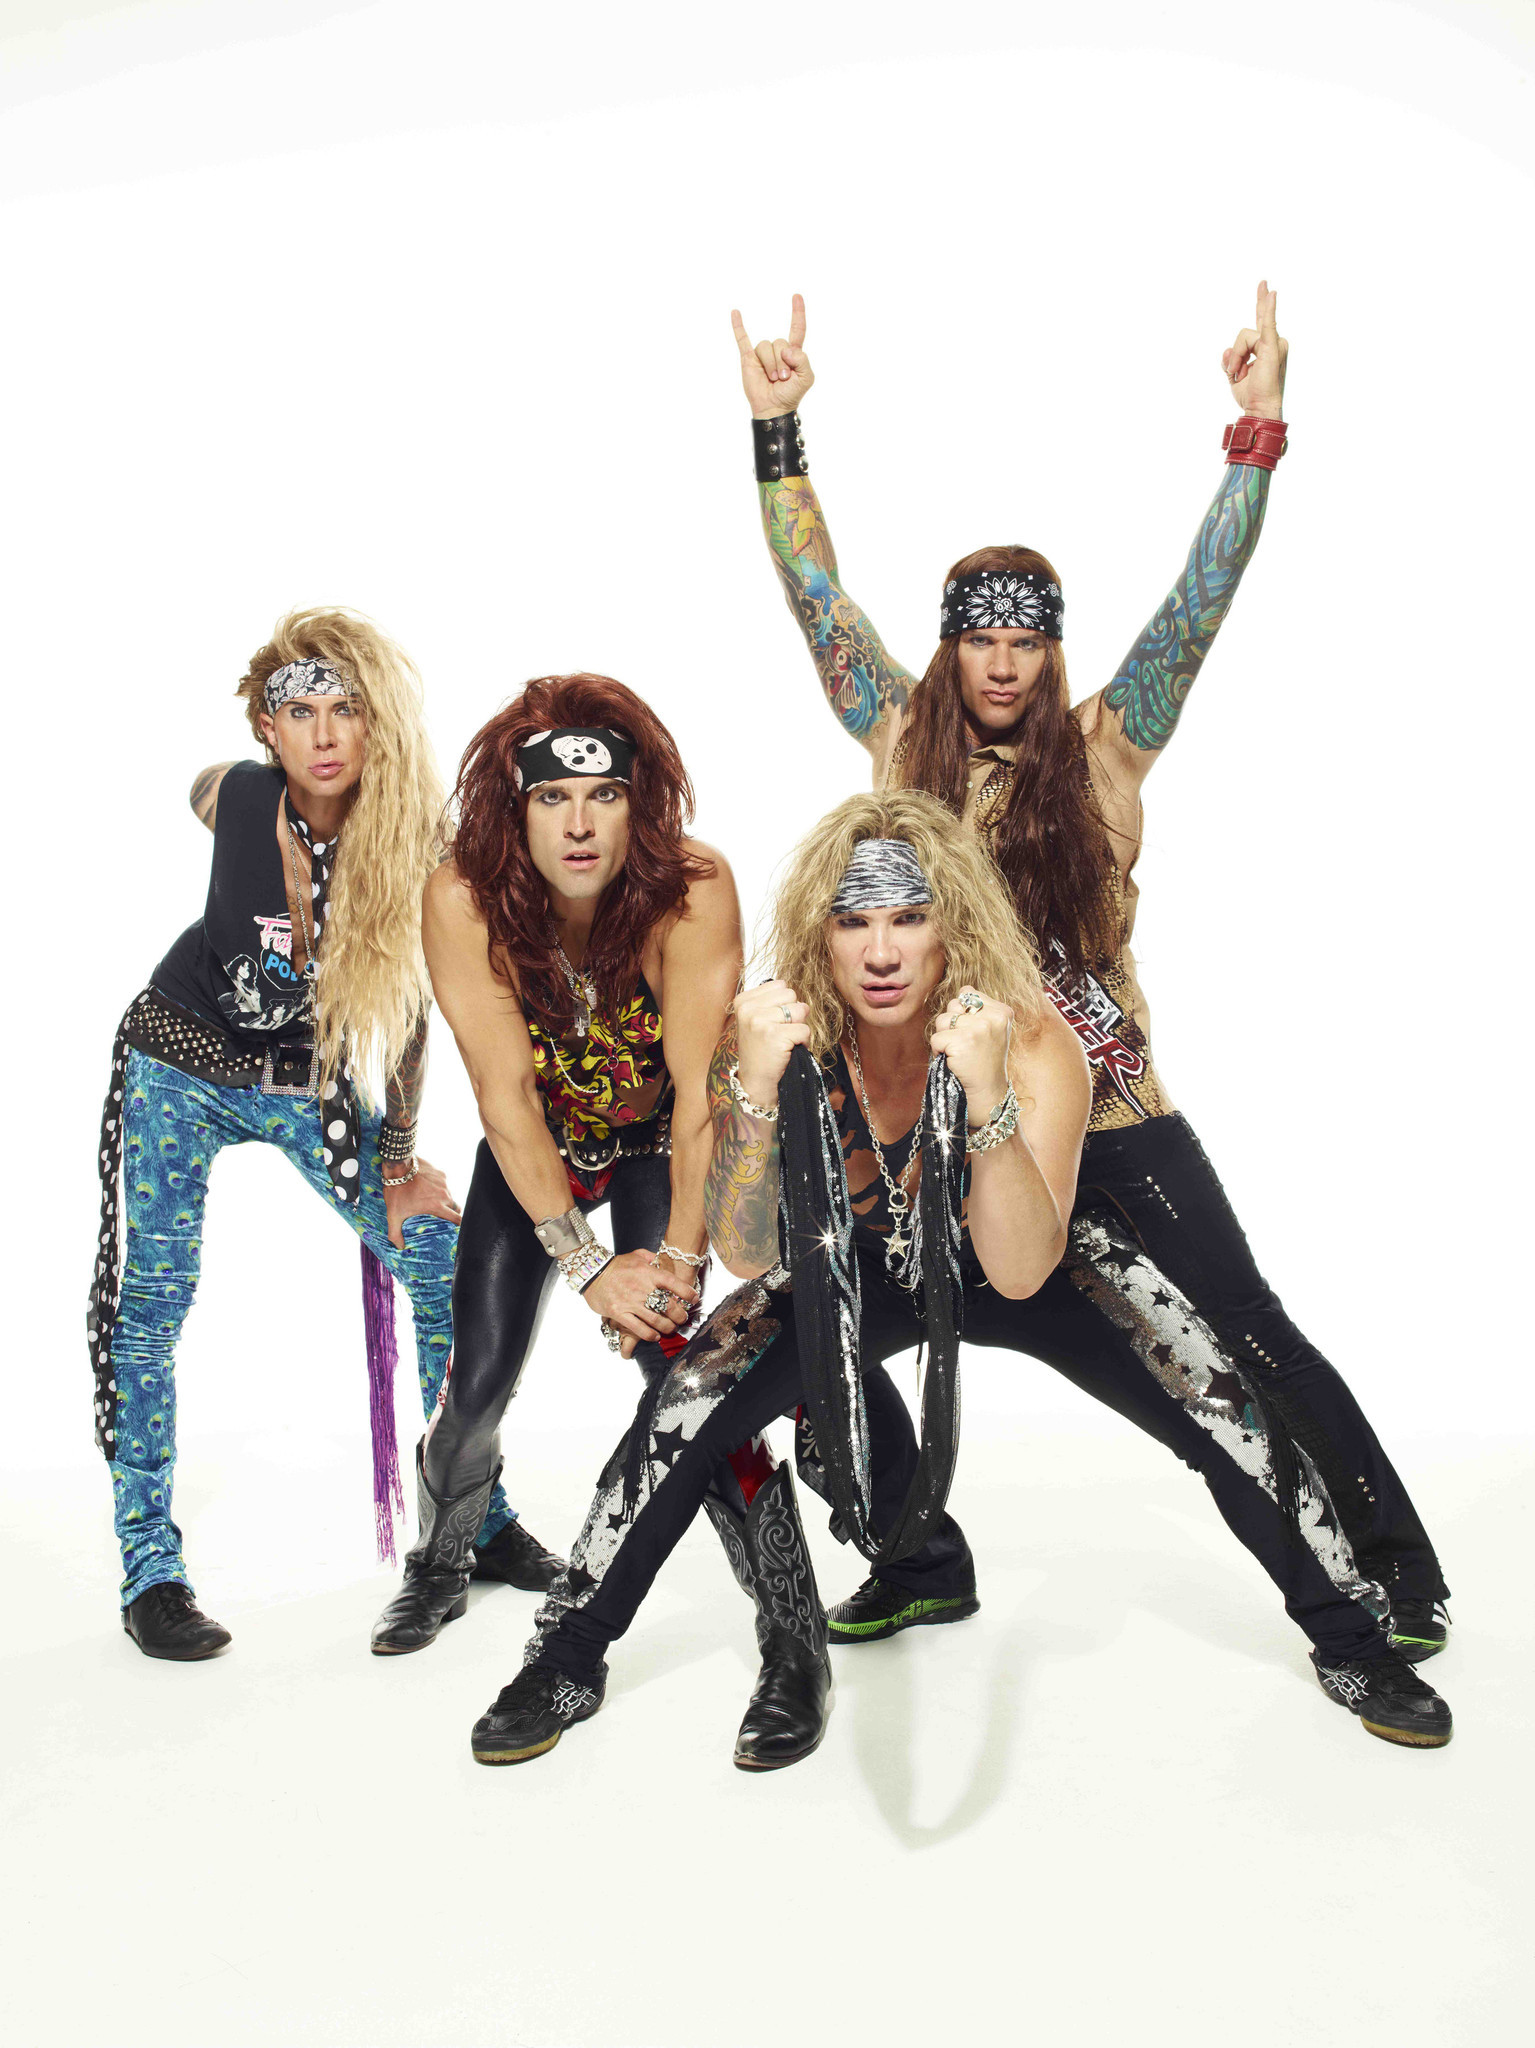 Steel Interview Interviewing Steel Panther